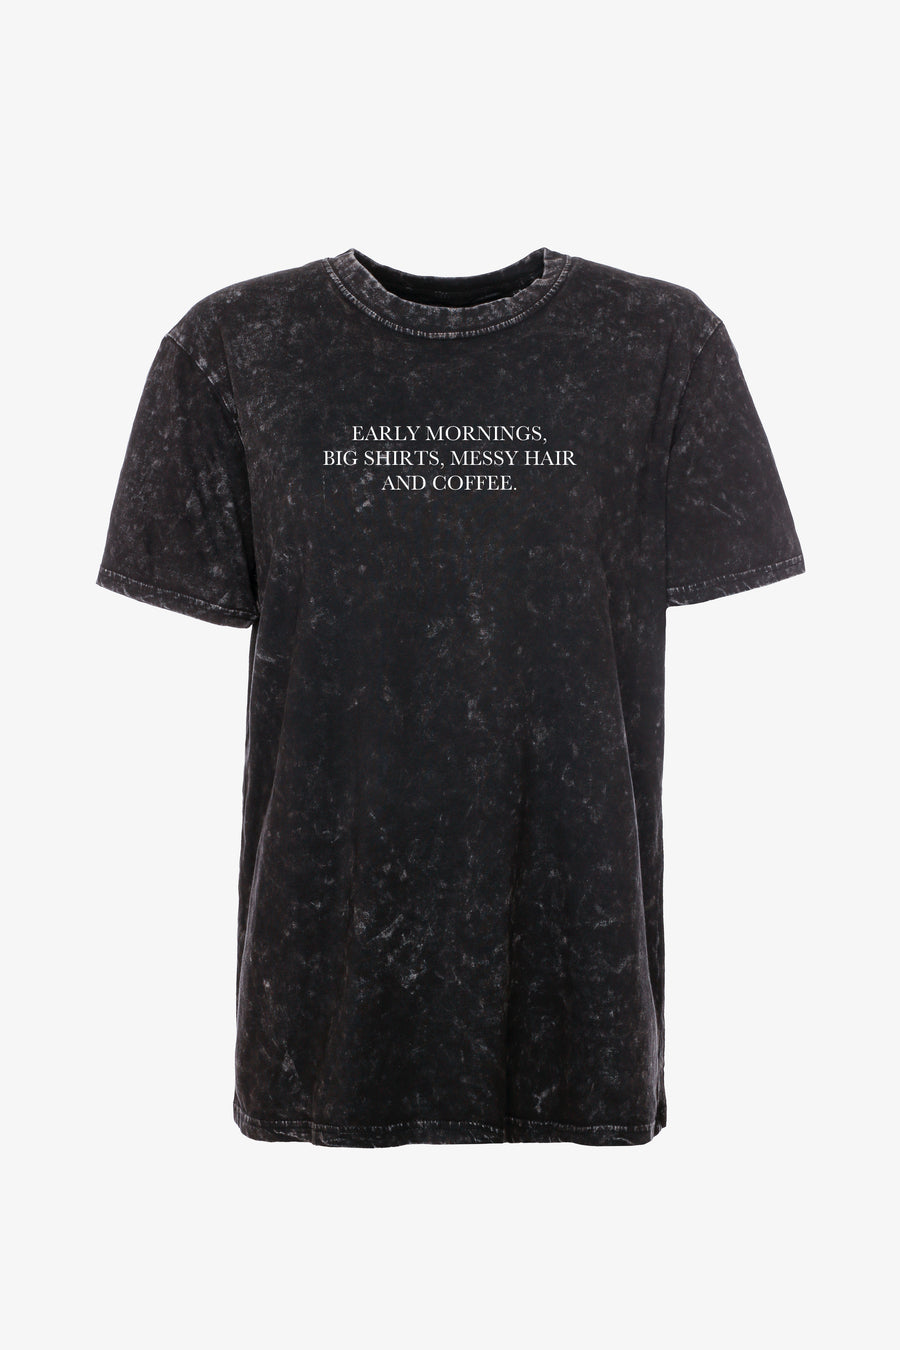 Gossengold- Early Mornings, Big Shirts, Messy Hair & Coffee Slogan T-Shirt Damen - schwarz